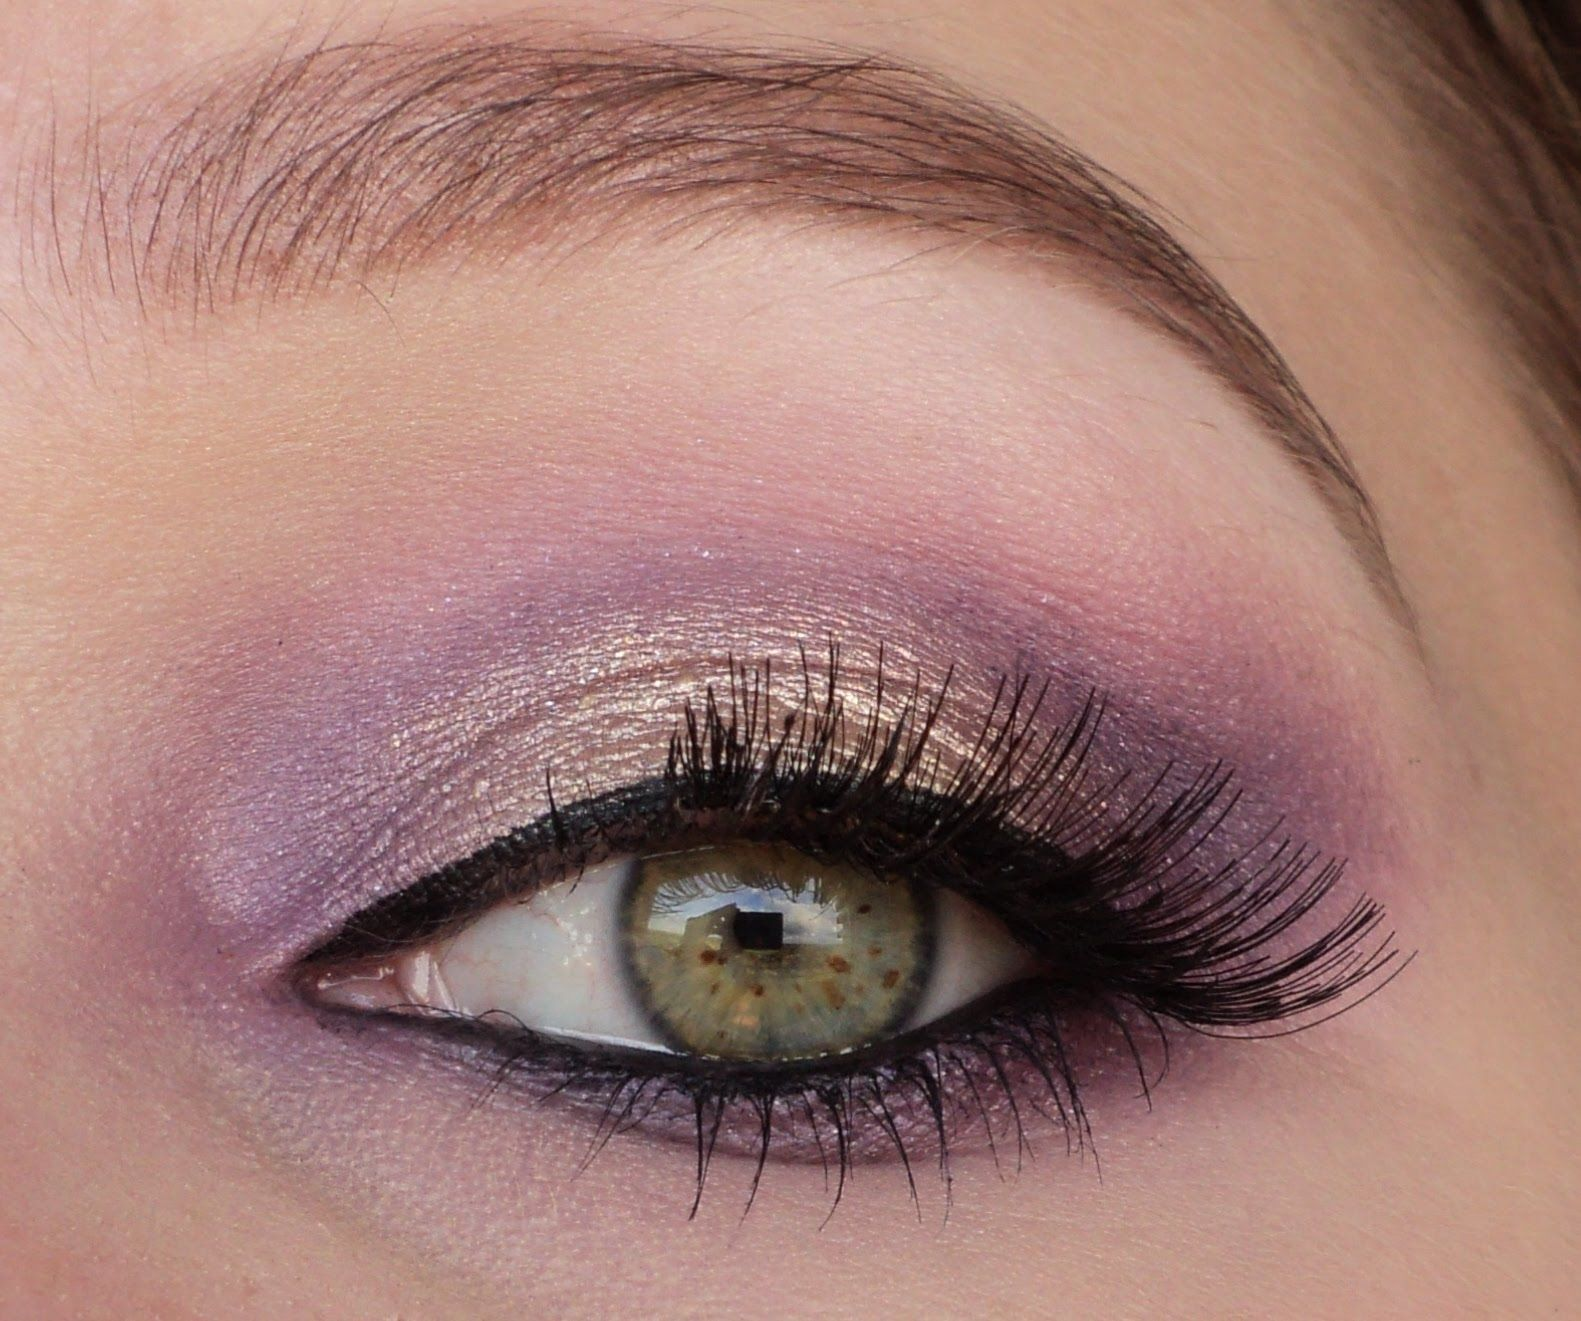 Gradient eyeshadow with hues of gold and purple, add a set of falsies to amp up the drama.